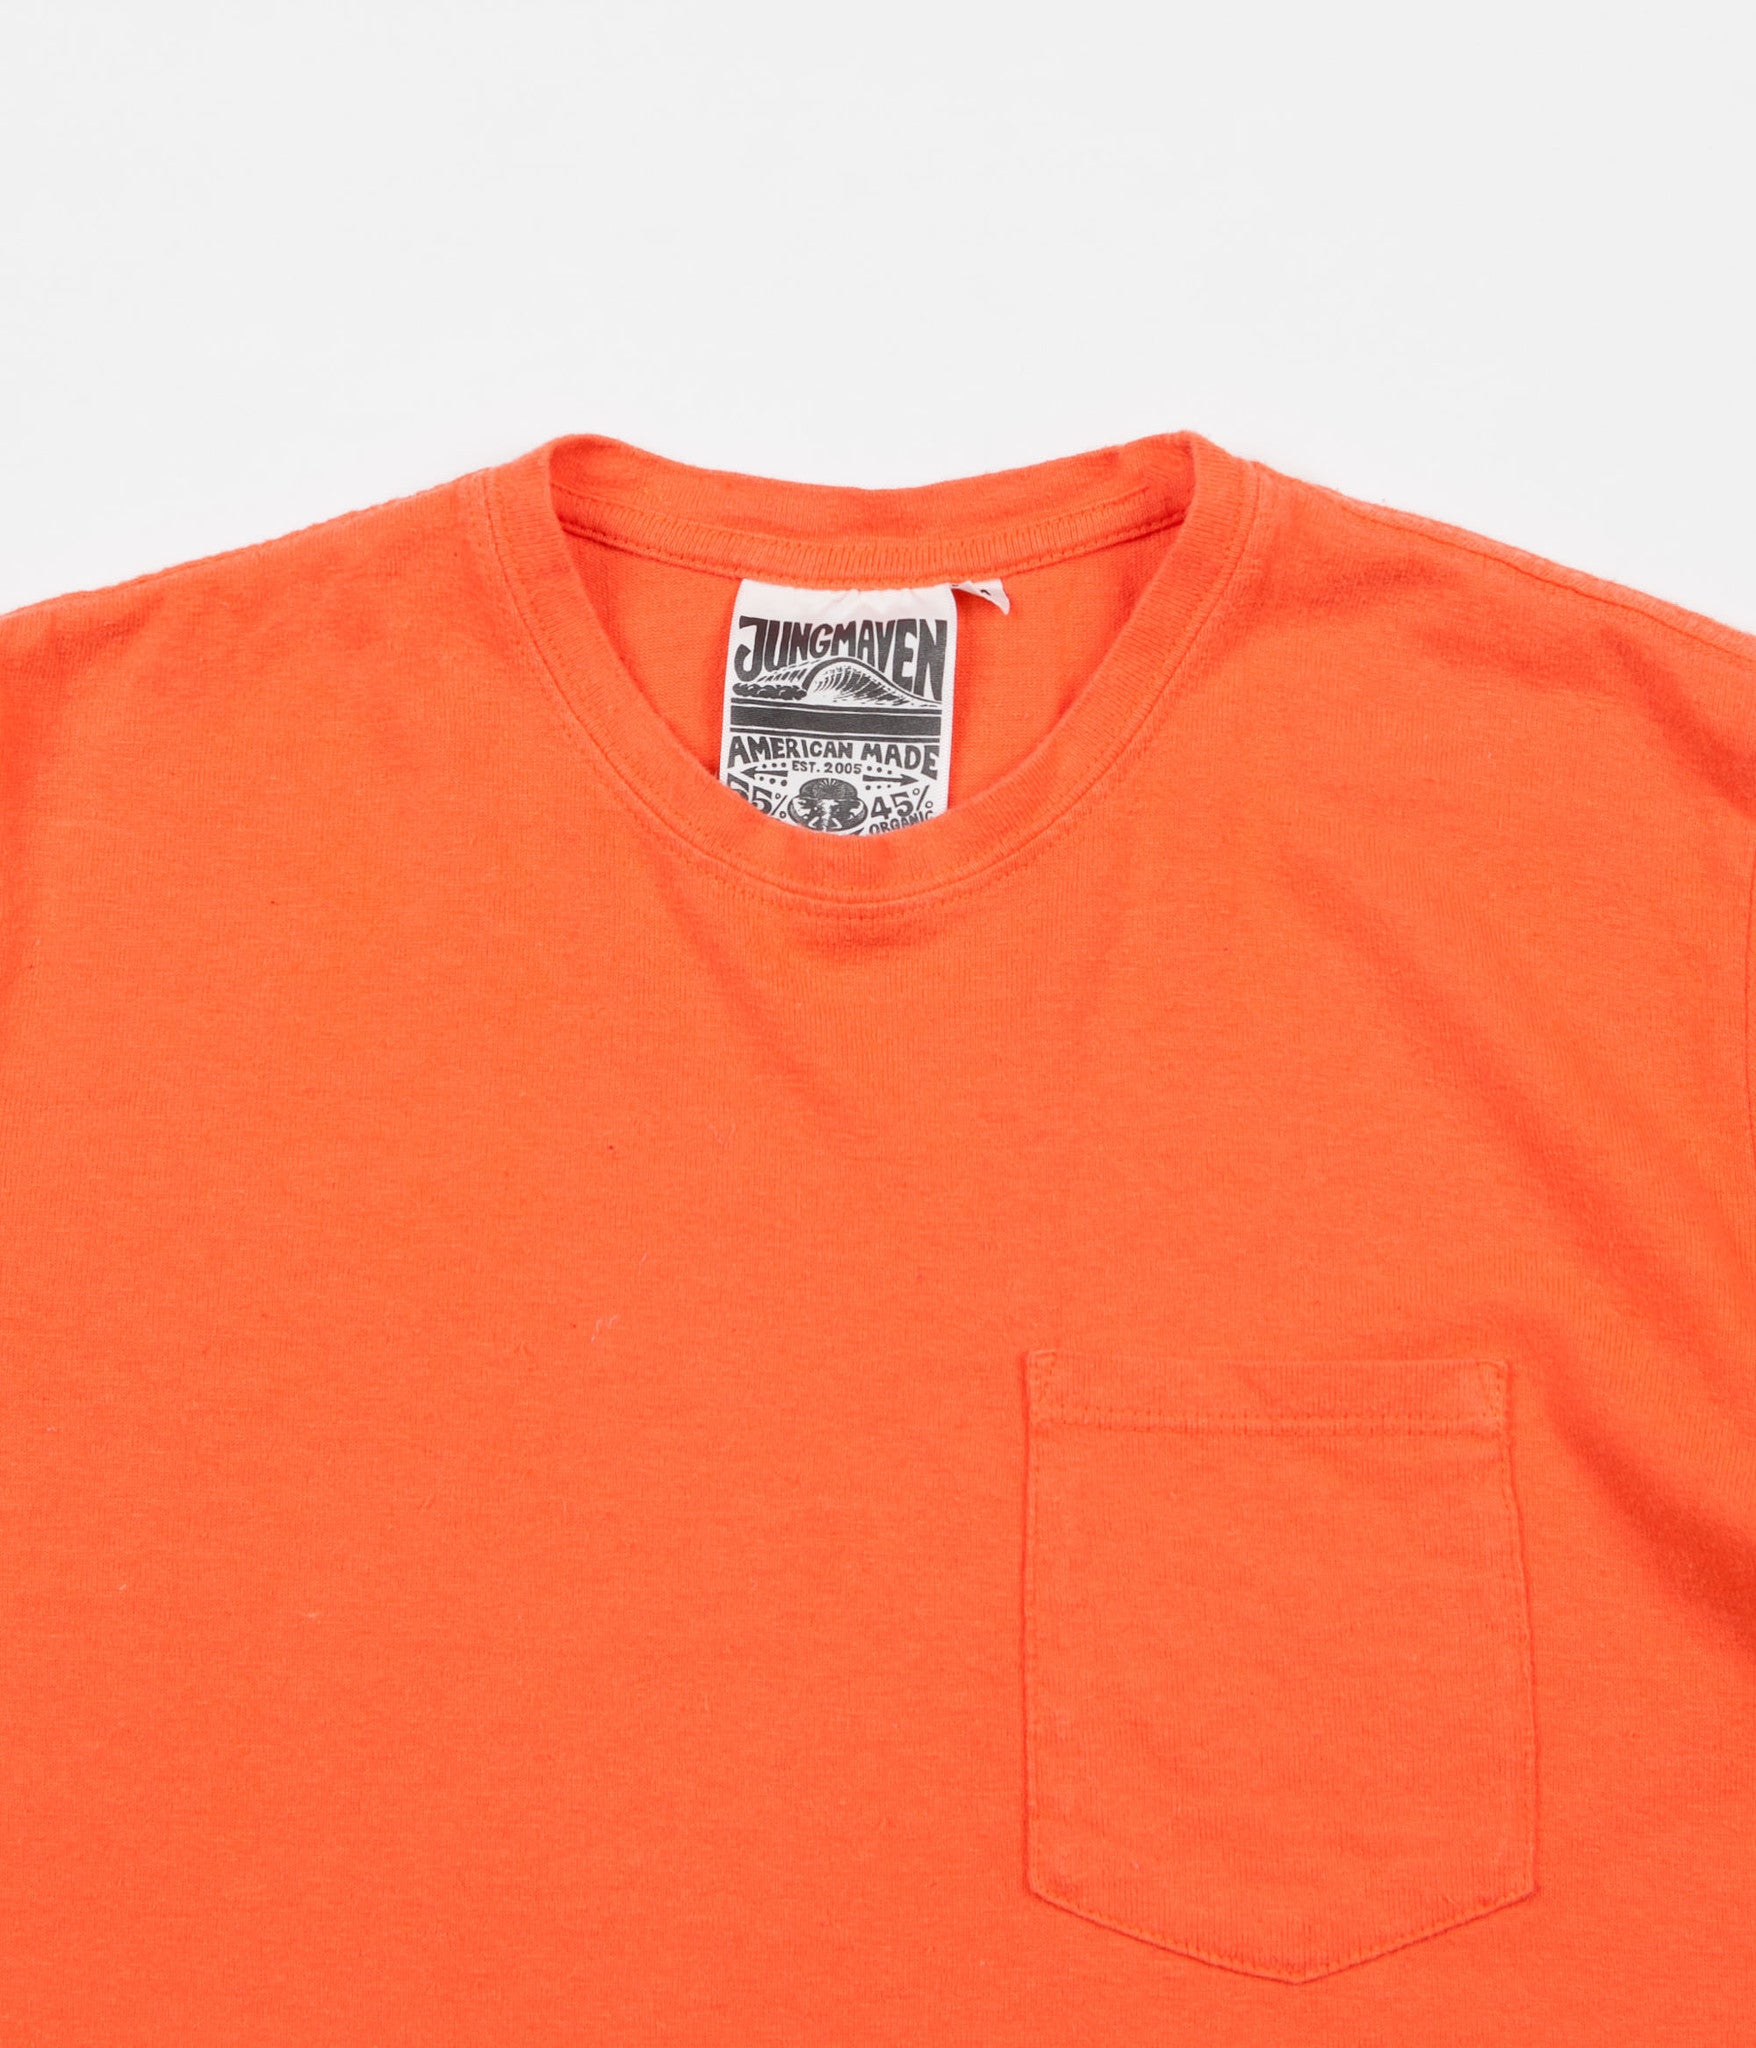 Jungmaven Baja Hemp Pocket T-Shirt - Pink Salmon